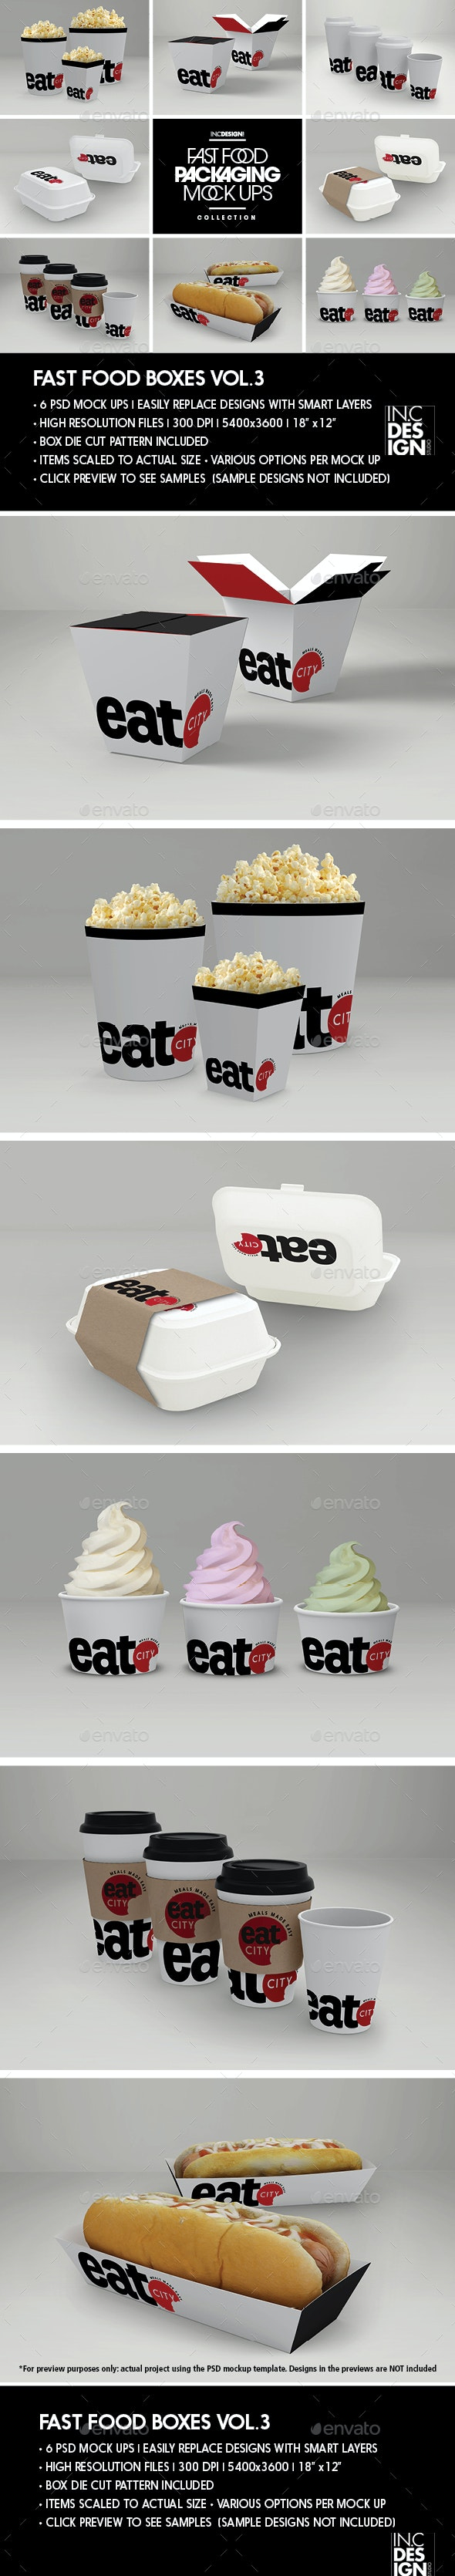 Fast Food Boxes Vol.3:Take Out Packaging Mock Ups - Food and Drink Packaging